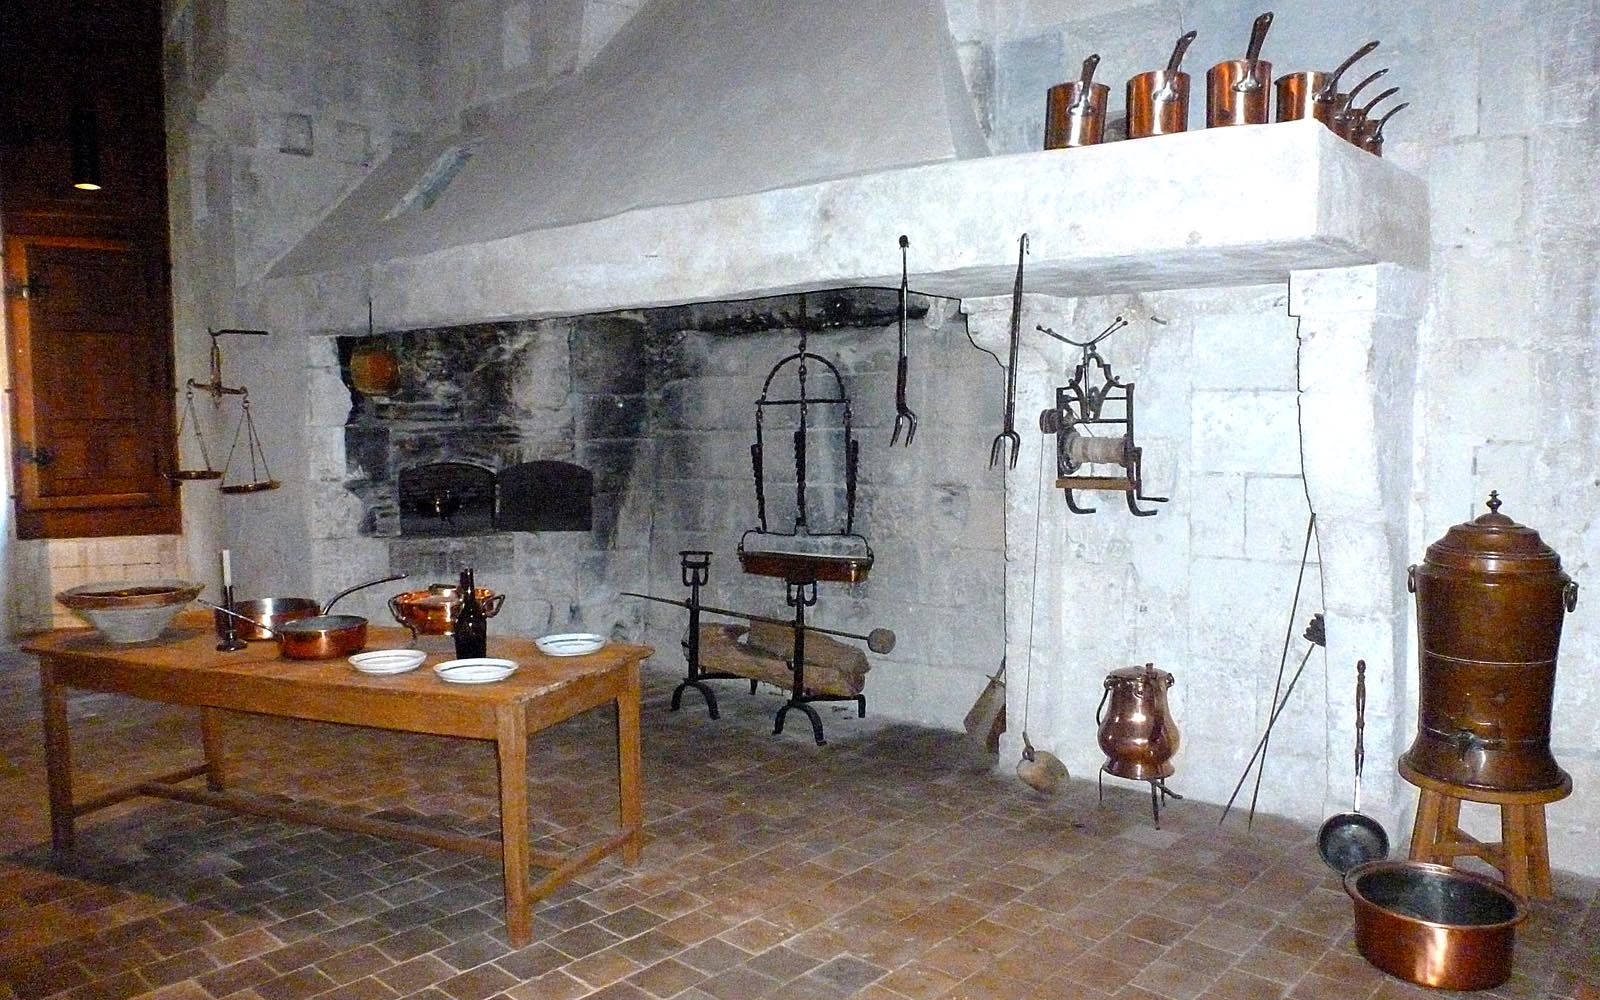 Living the life in Saint-Aignan: A restored kitchen at Chambord